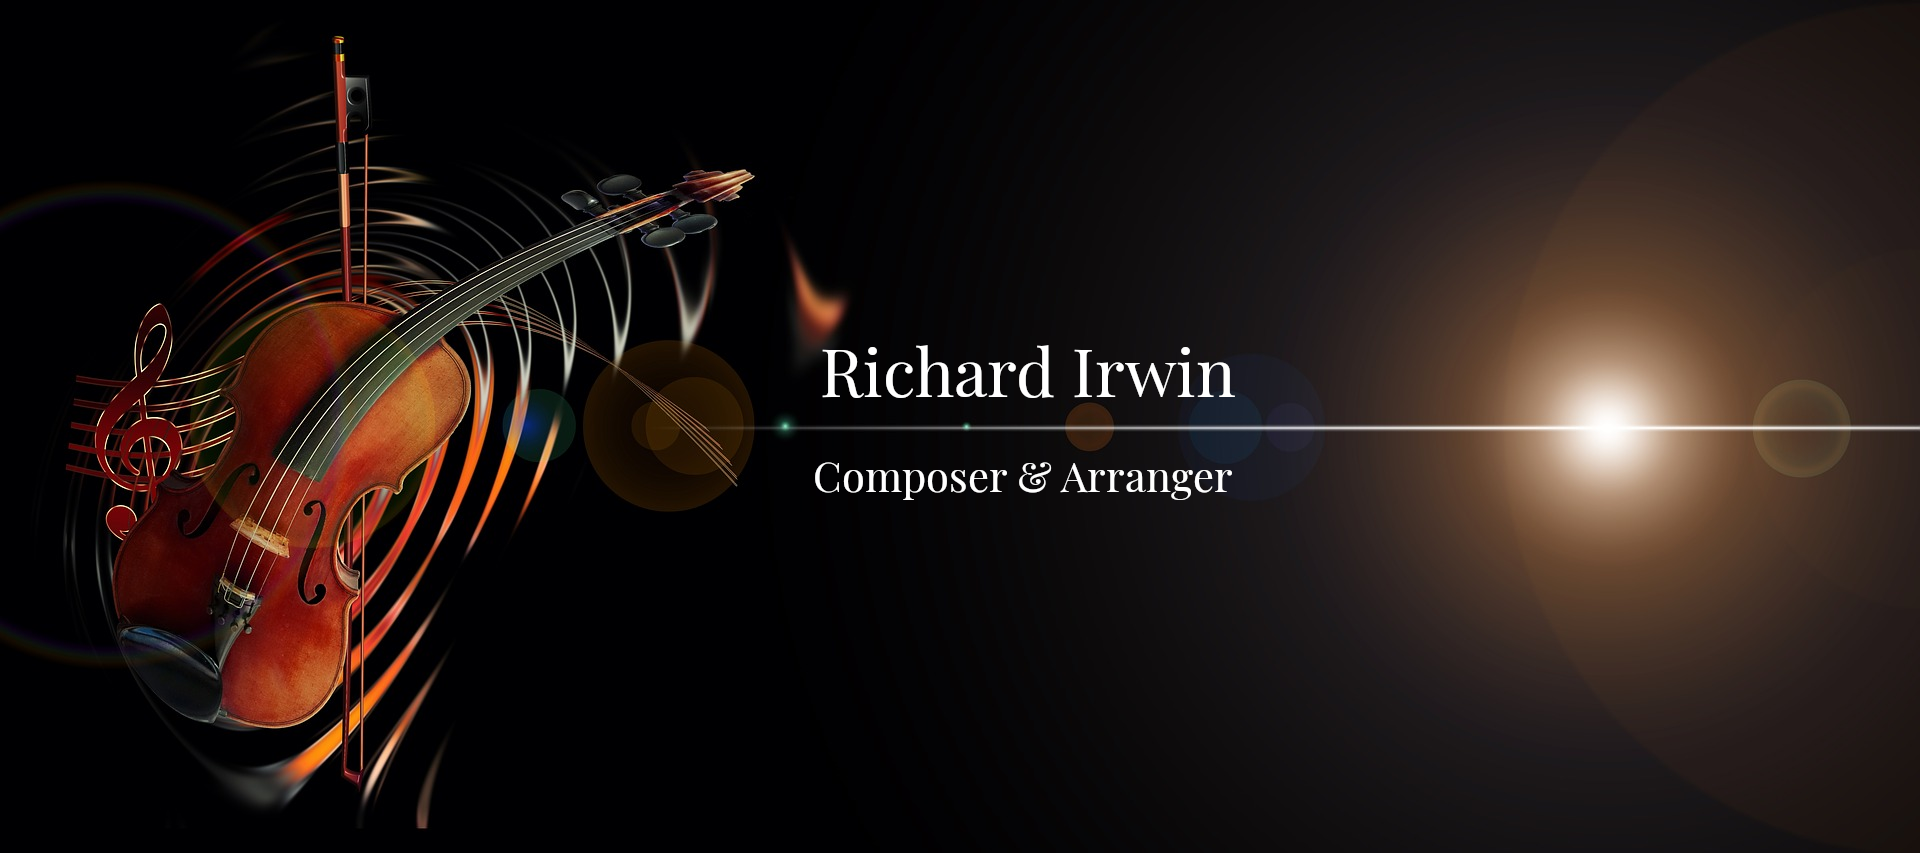 Richard Irwin Music